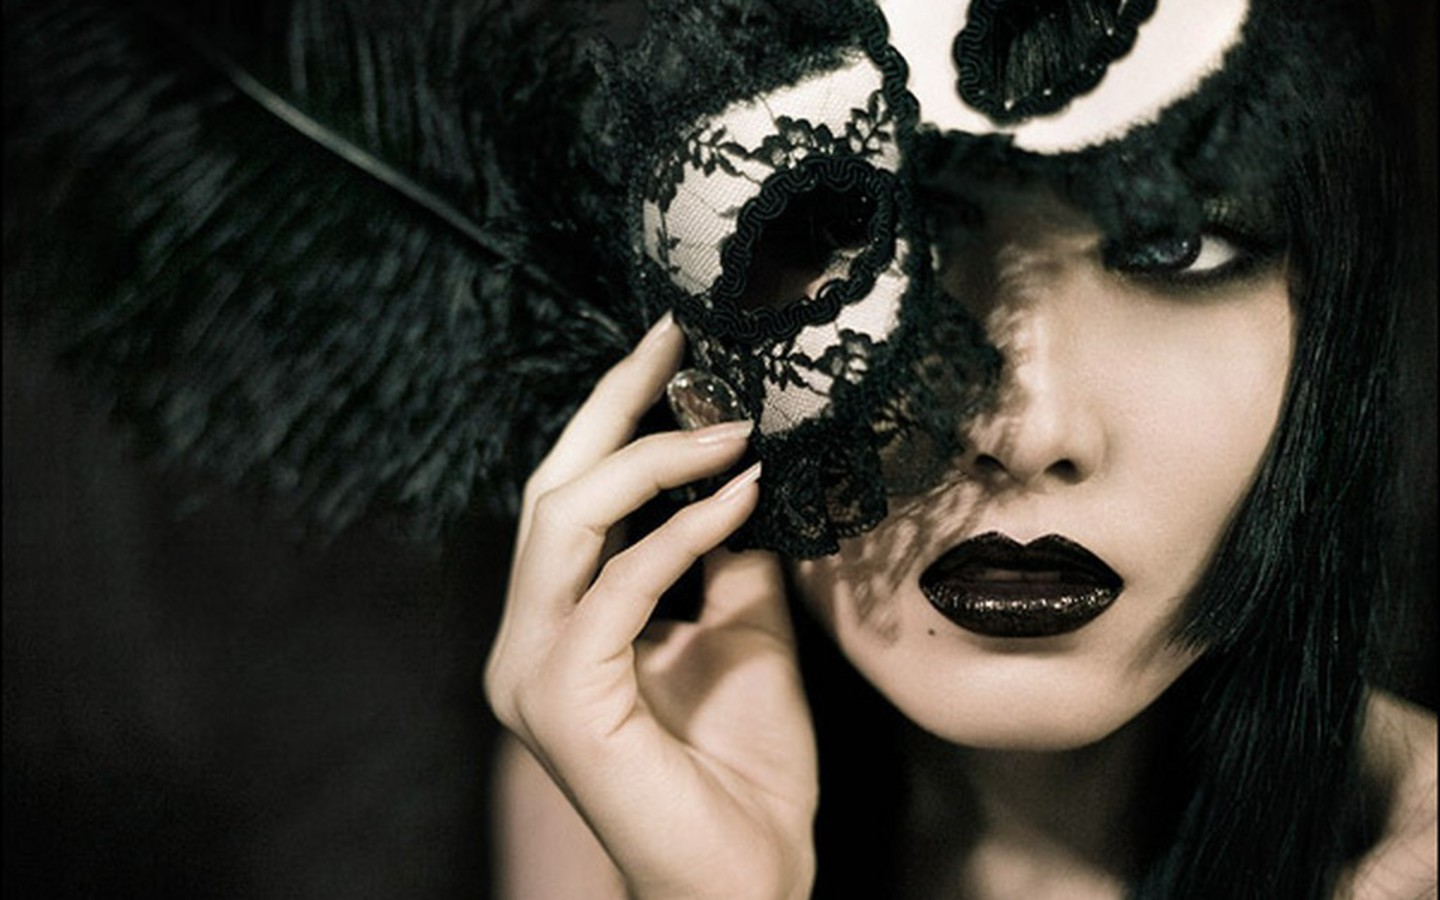 cool-girl-behind-the-mask-wallpaper